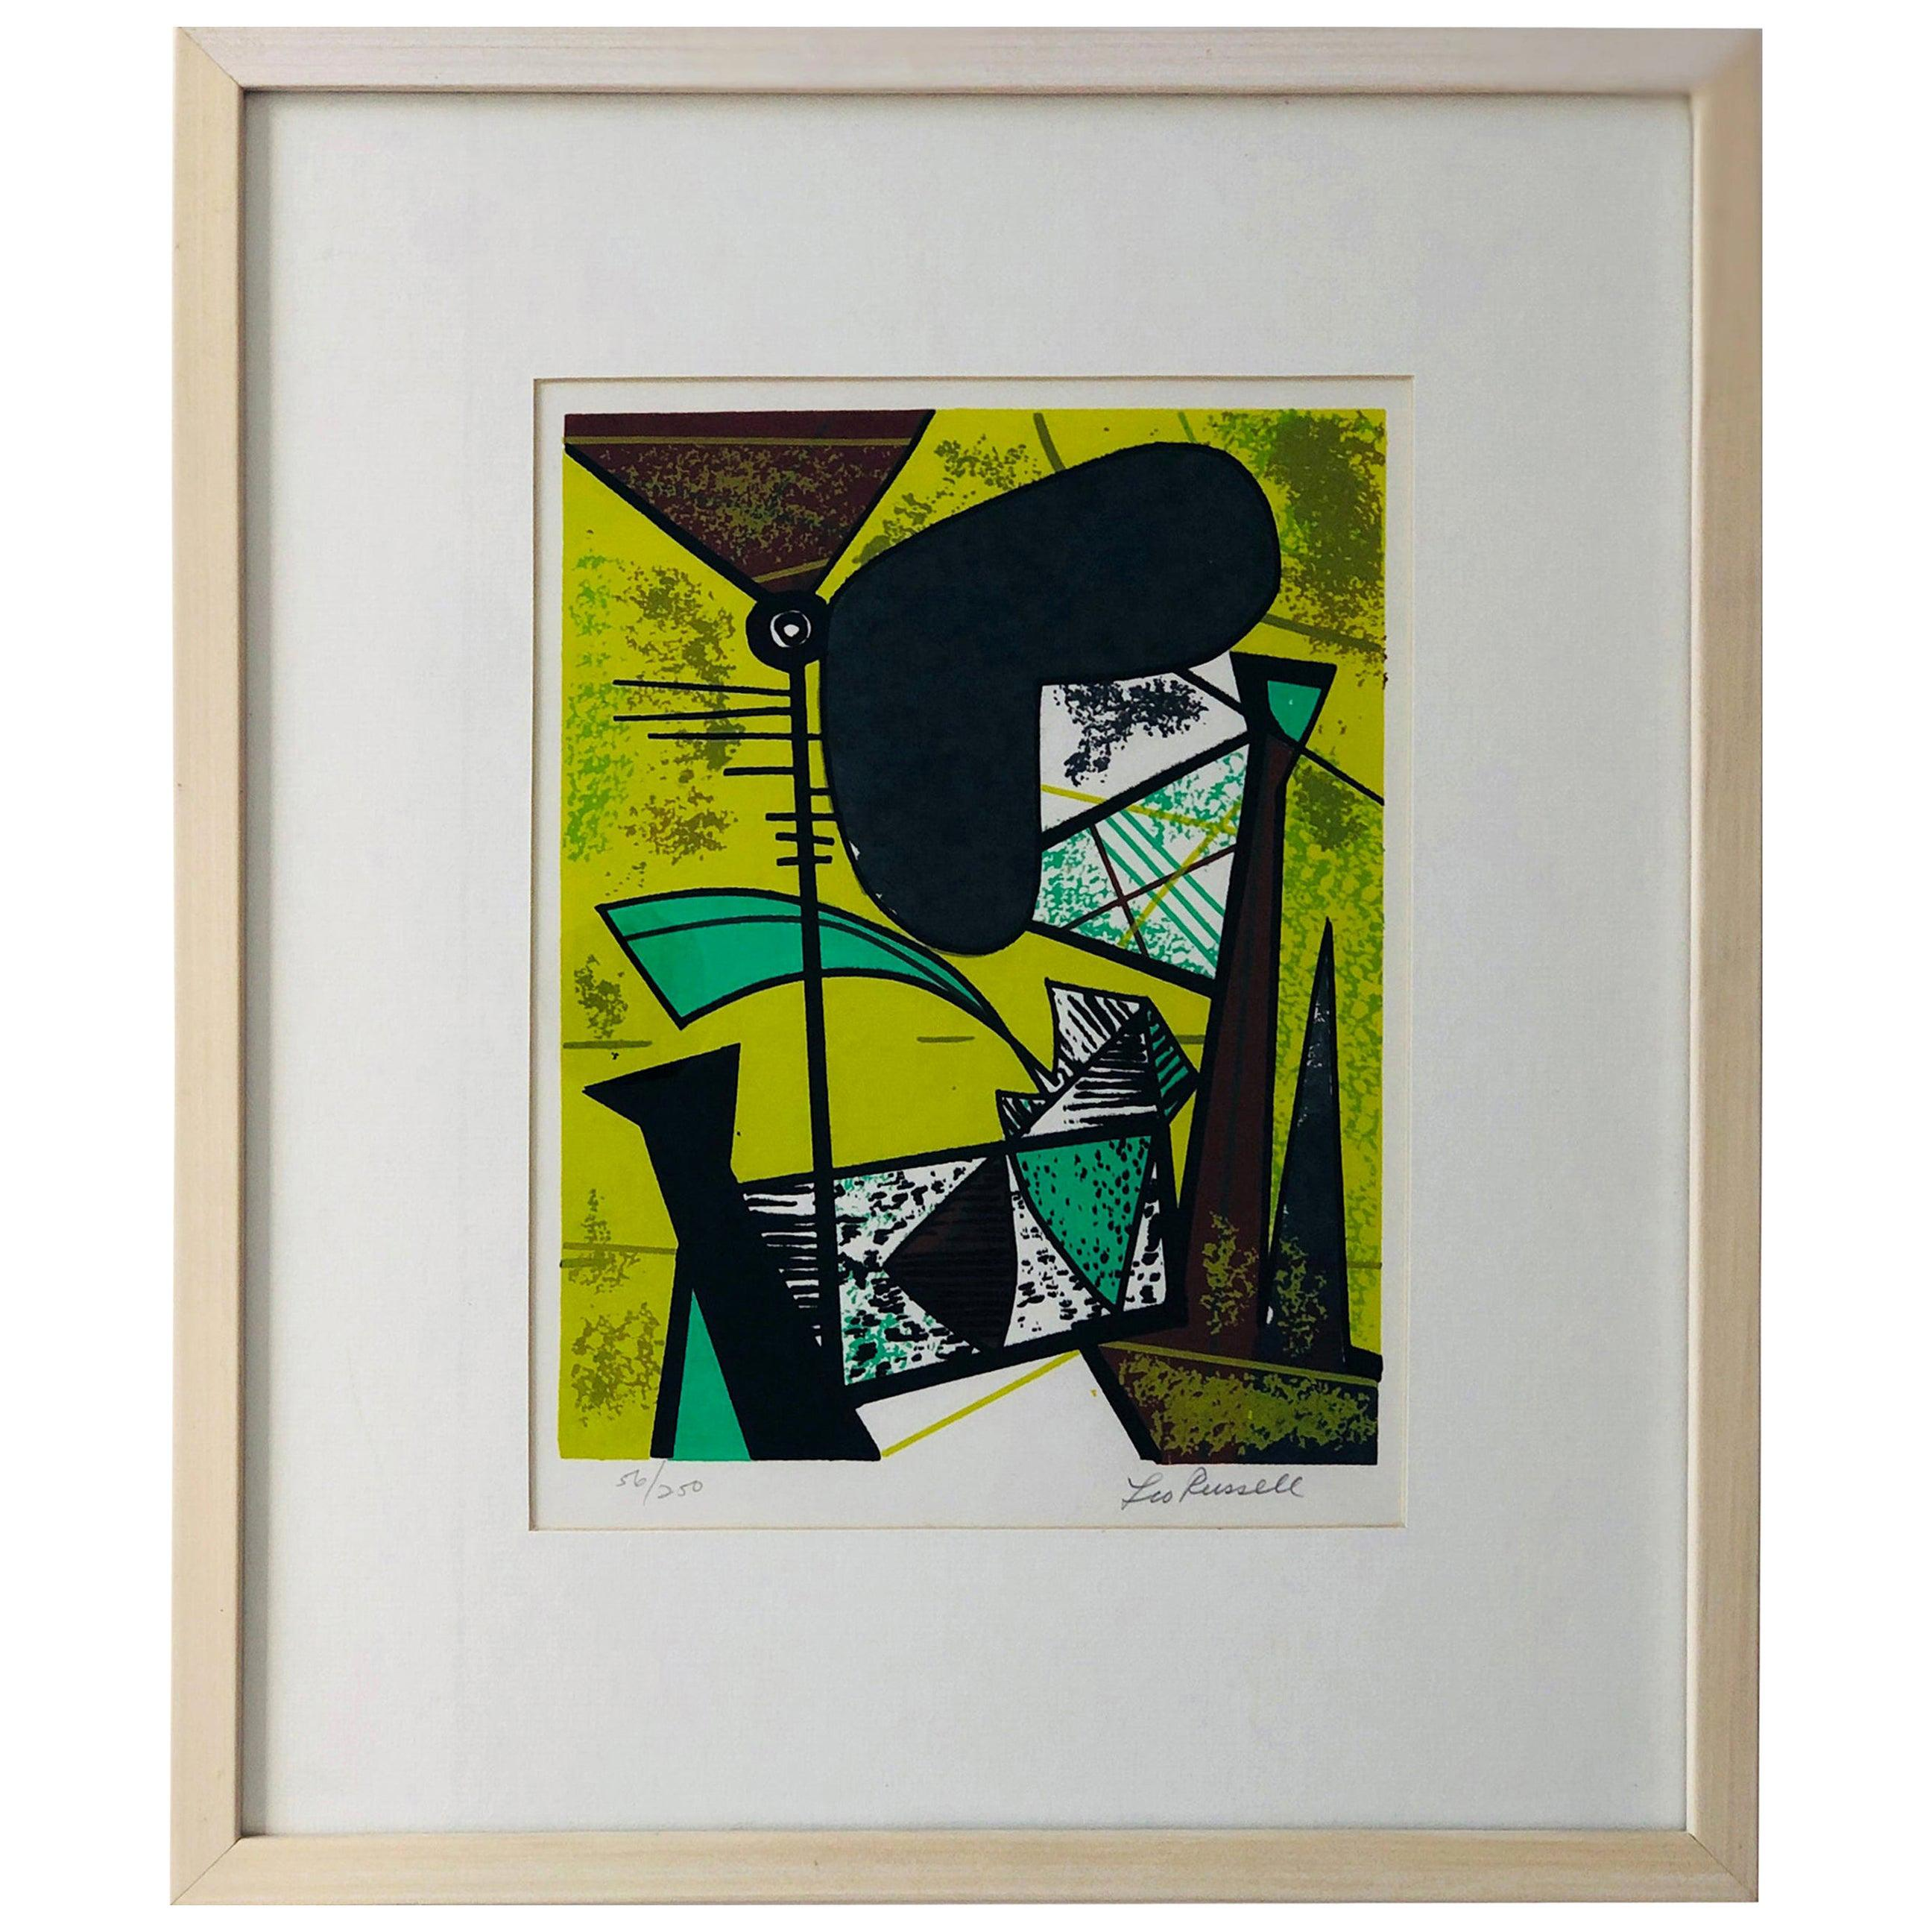 Abstract Modern Leo Russell Graphic Print in Shades of Green, White, Black, Gray